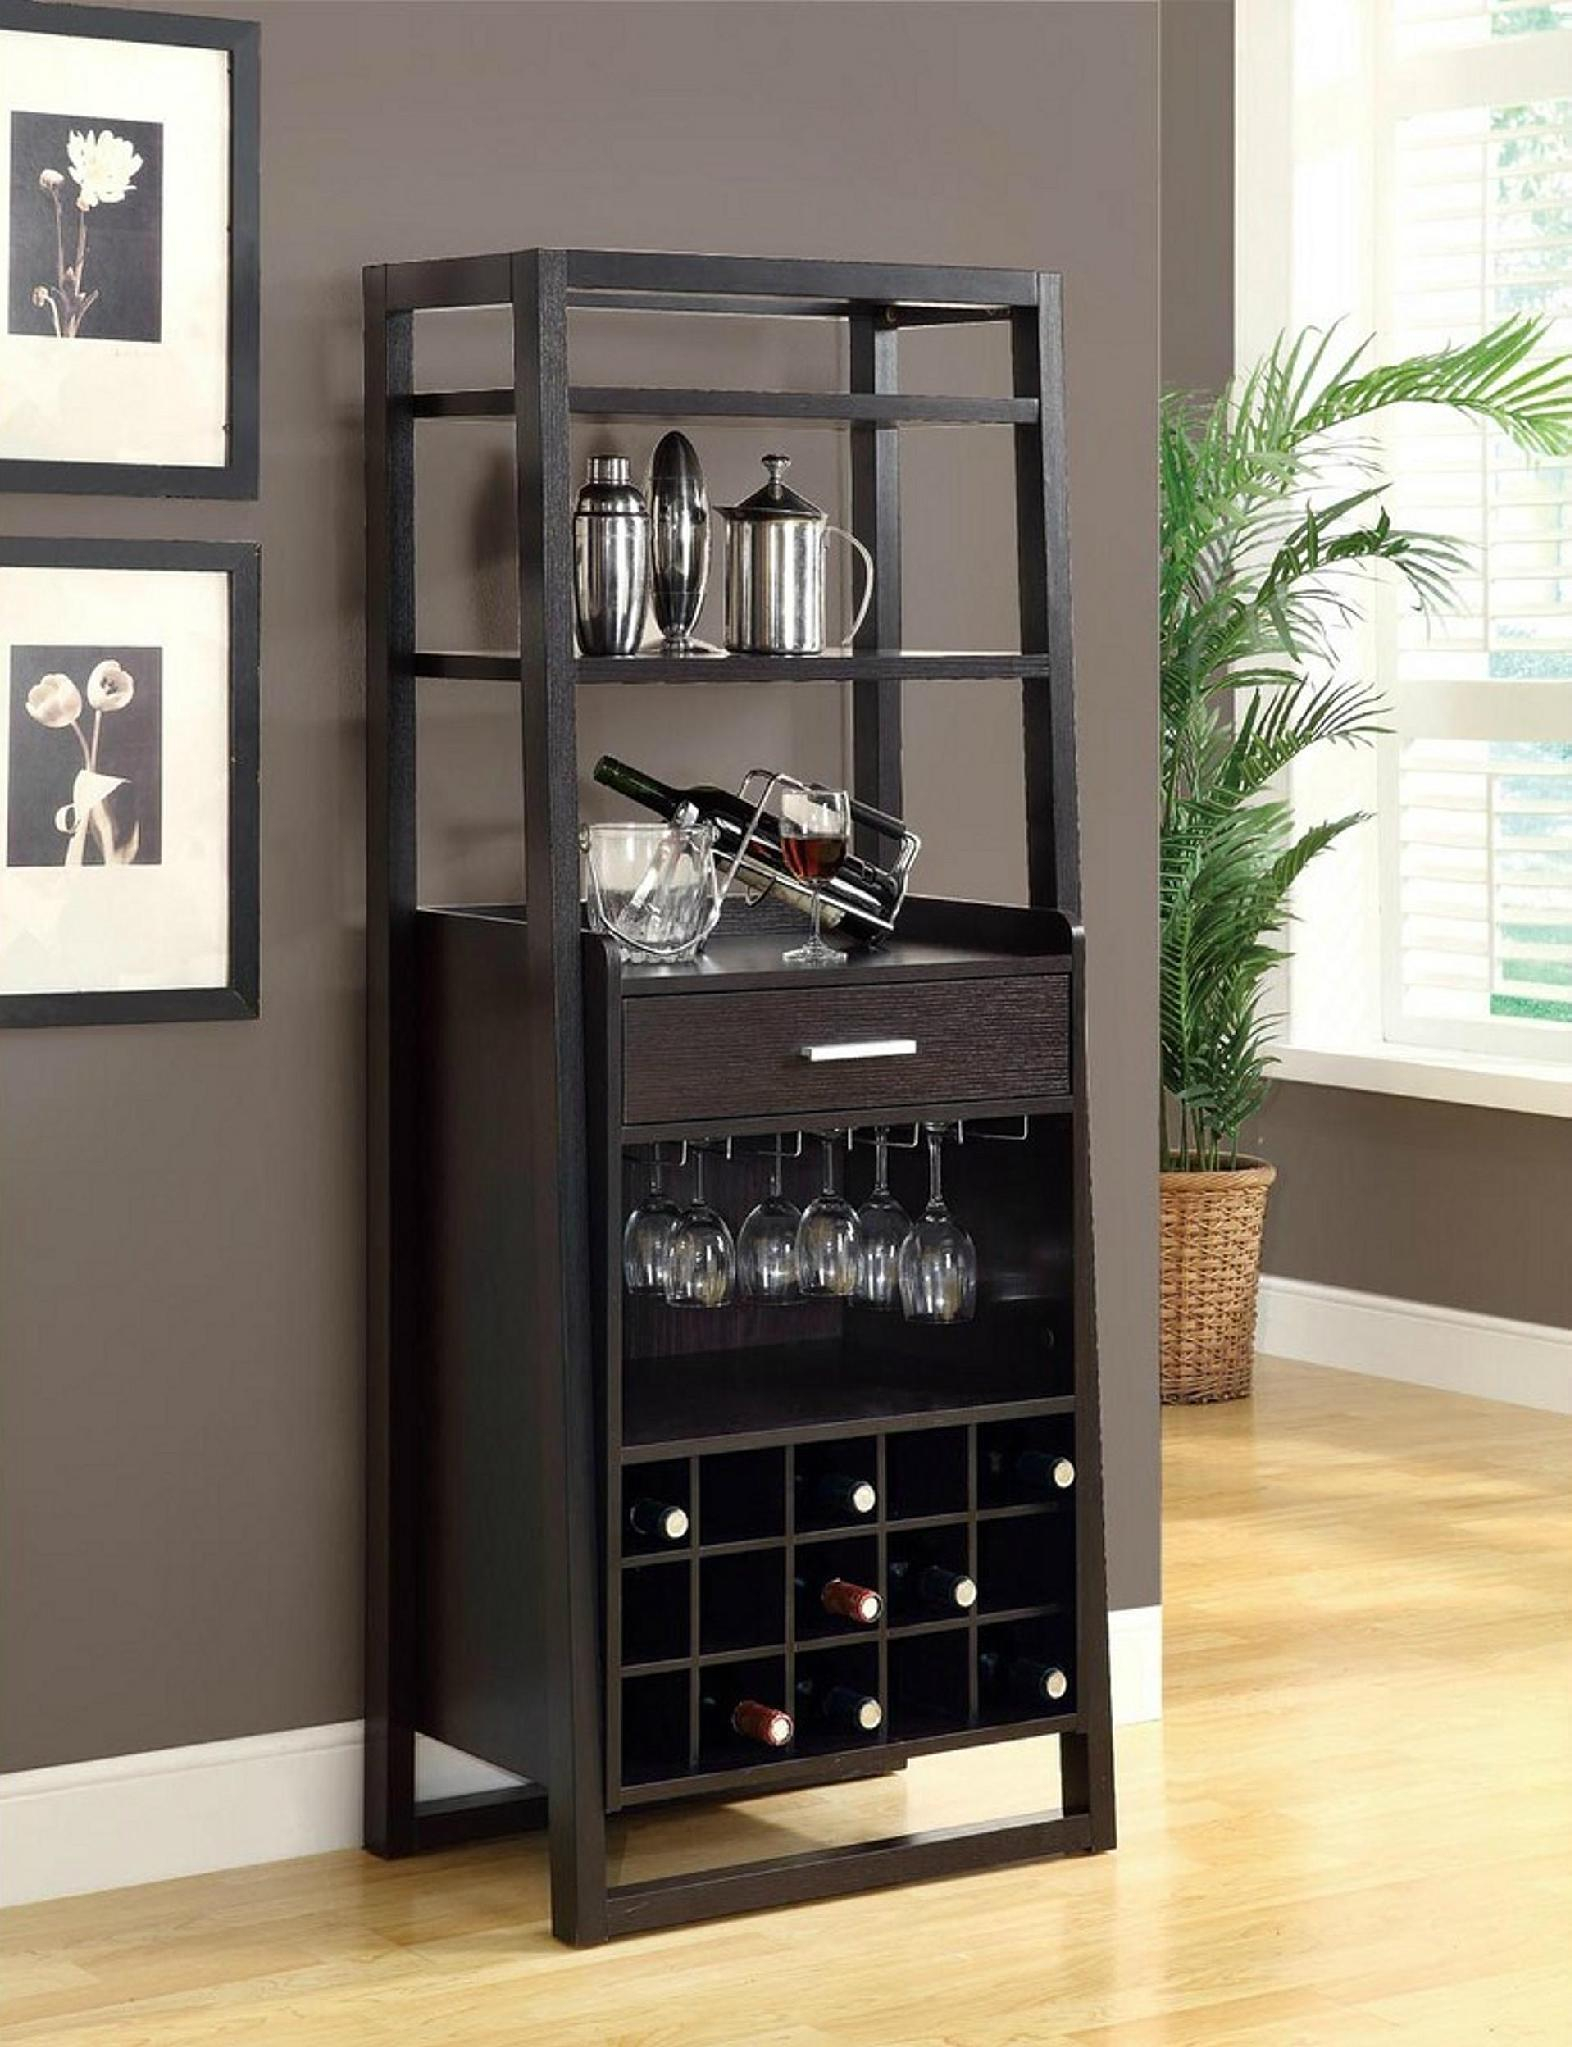 15 Bottles Open Shelves Dulcet Tall Wine Bar Cabinet with size 1572 X 2047